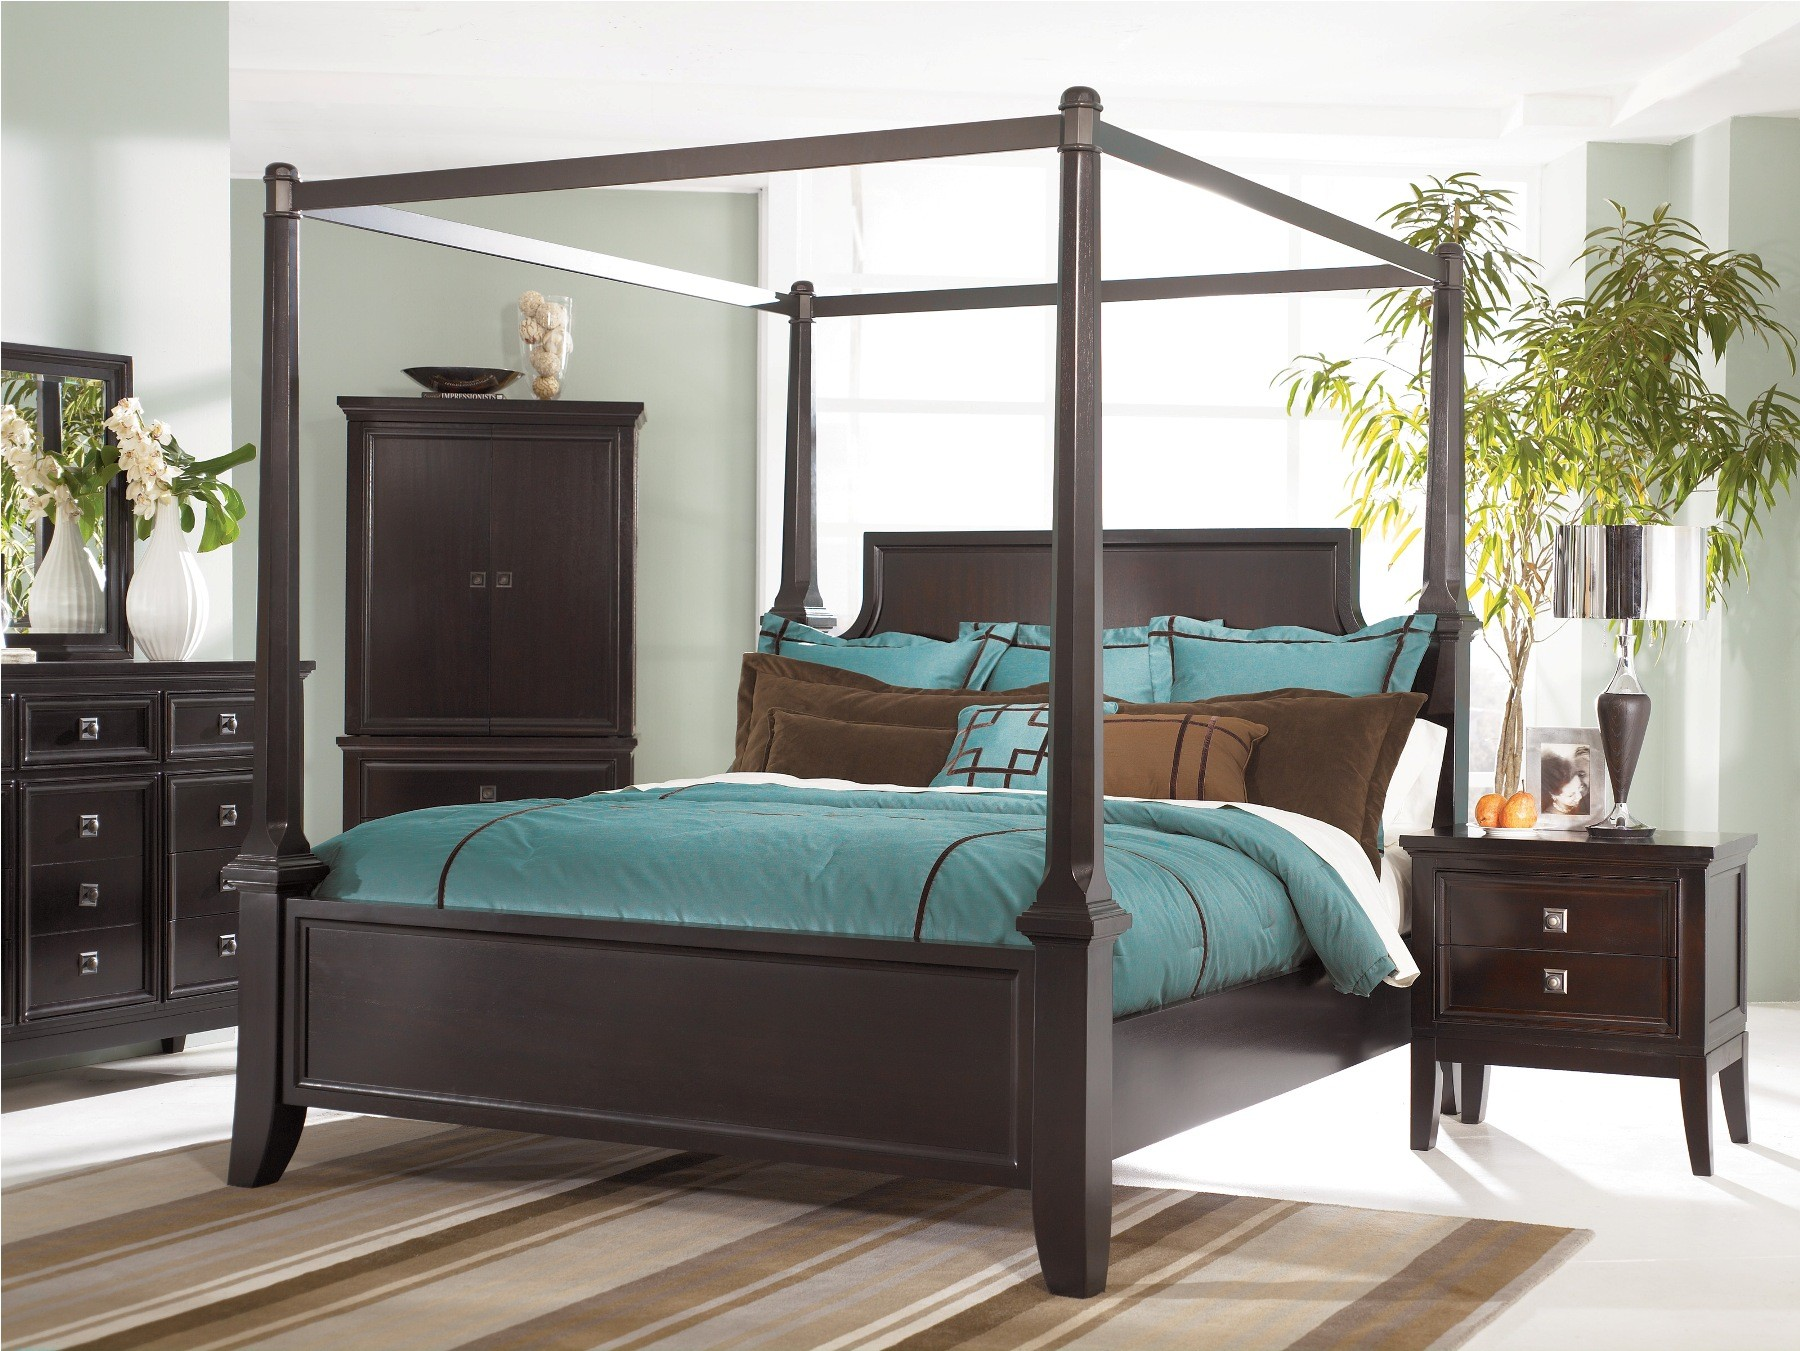 Martini Suite Cal King Canopy Poster Bed From Ashley B551 50 62 72 95 Coleman Furniture